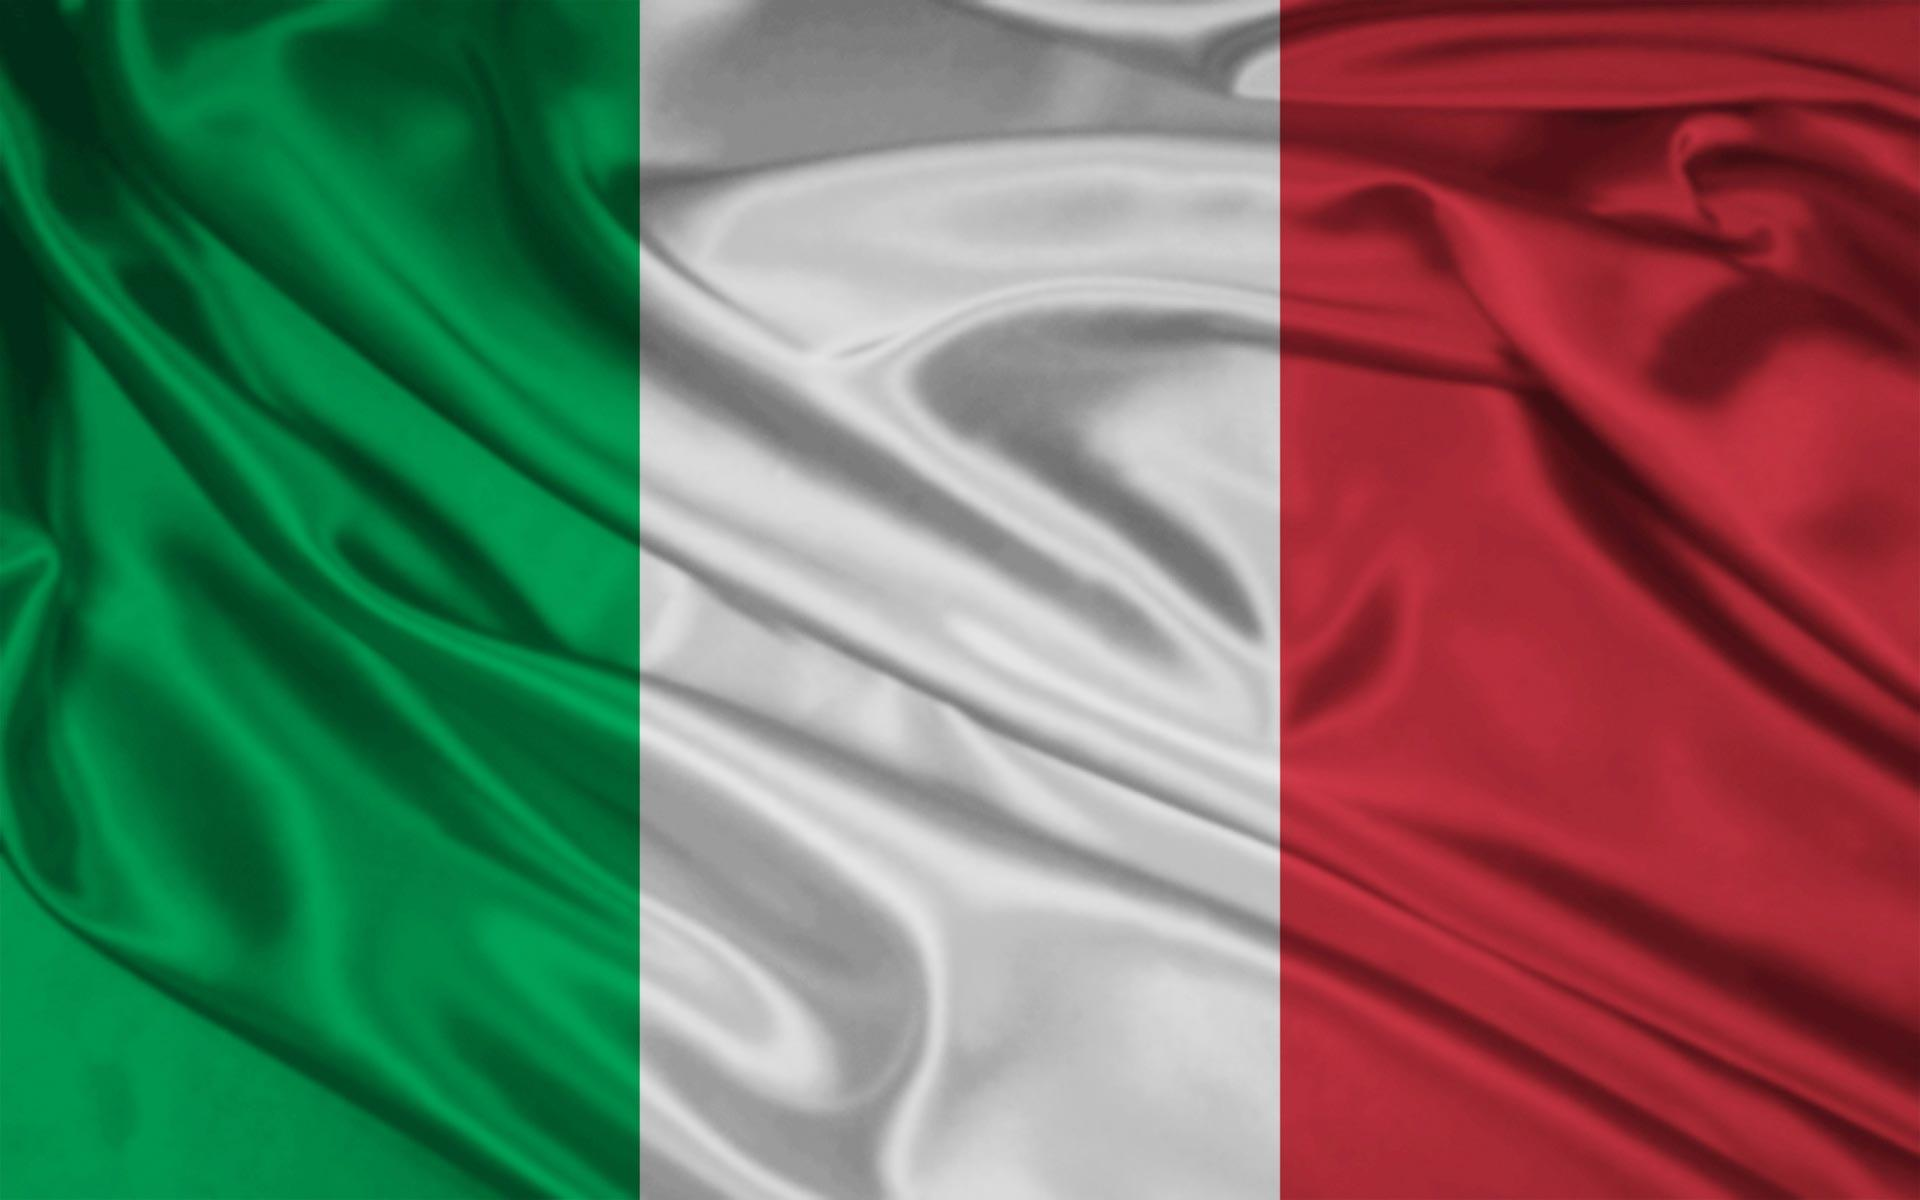 Italy, Flags and Italian